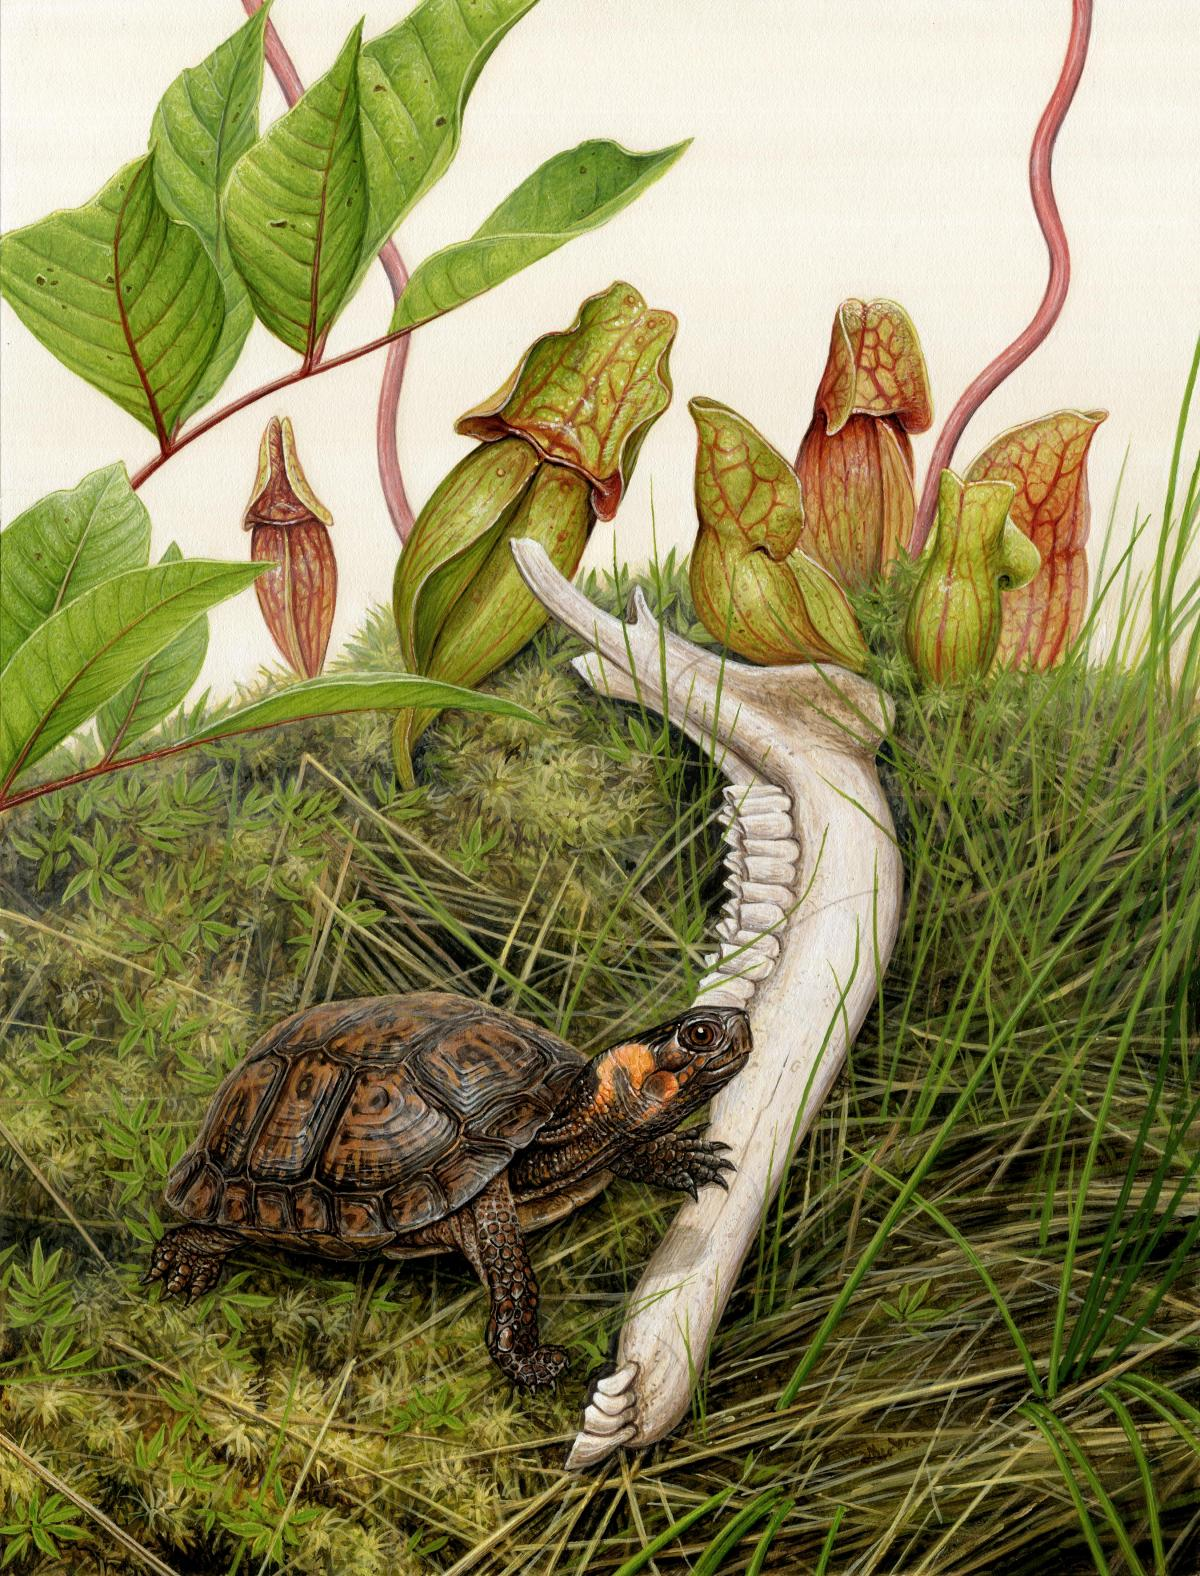 Bog Turtle   Wallhanging by Matt Patterson   Artists for Conservation 2021